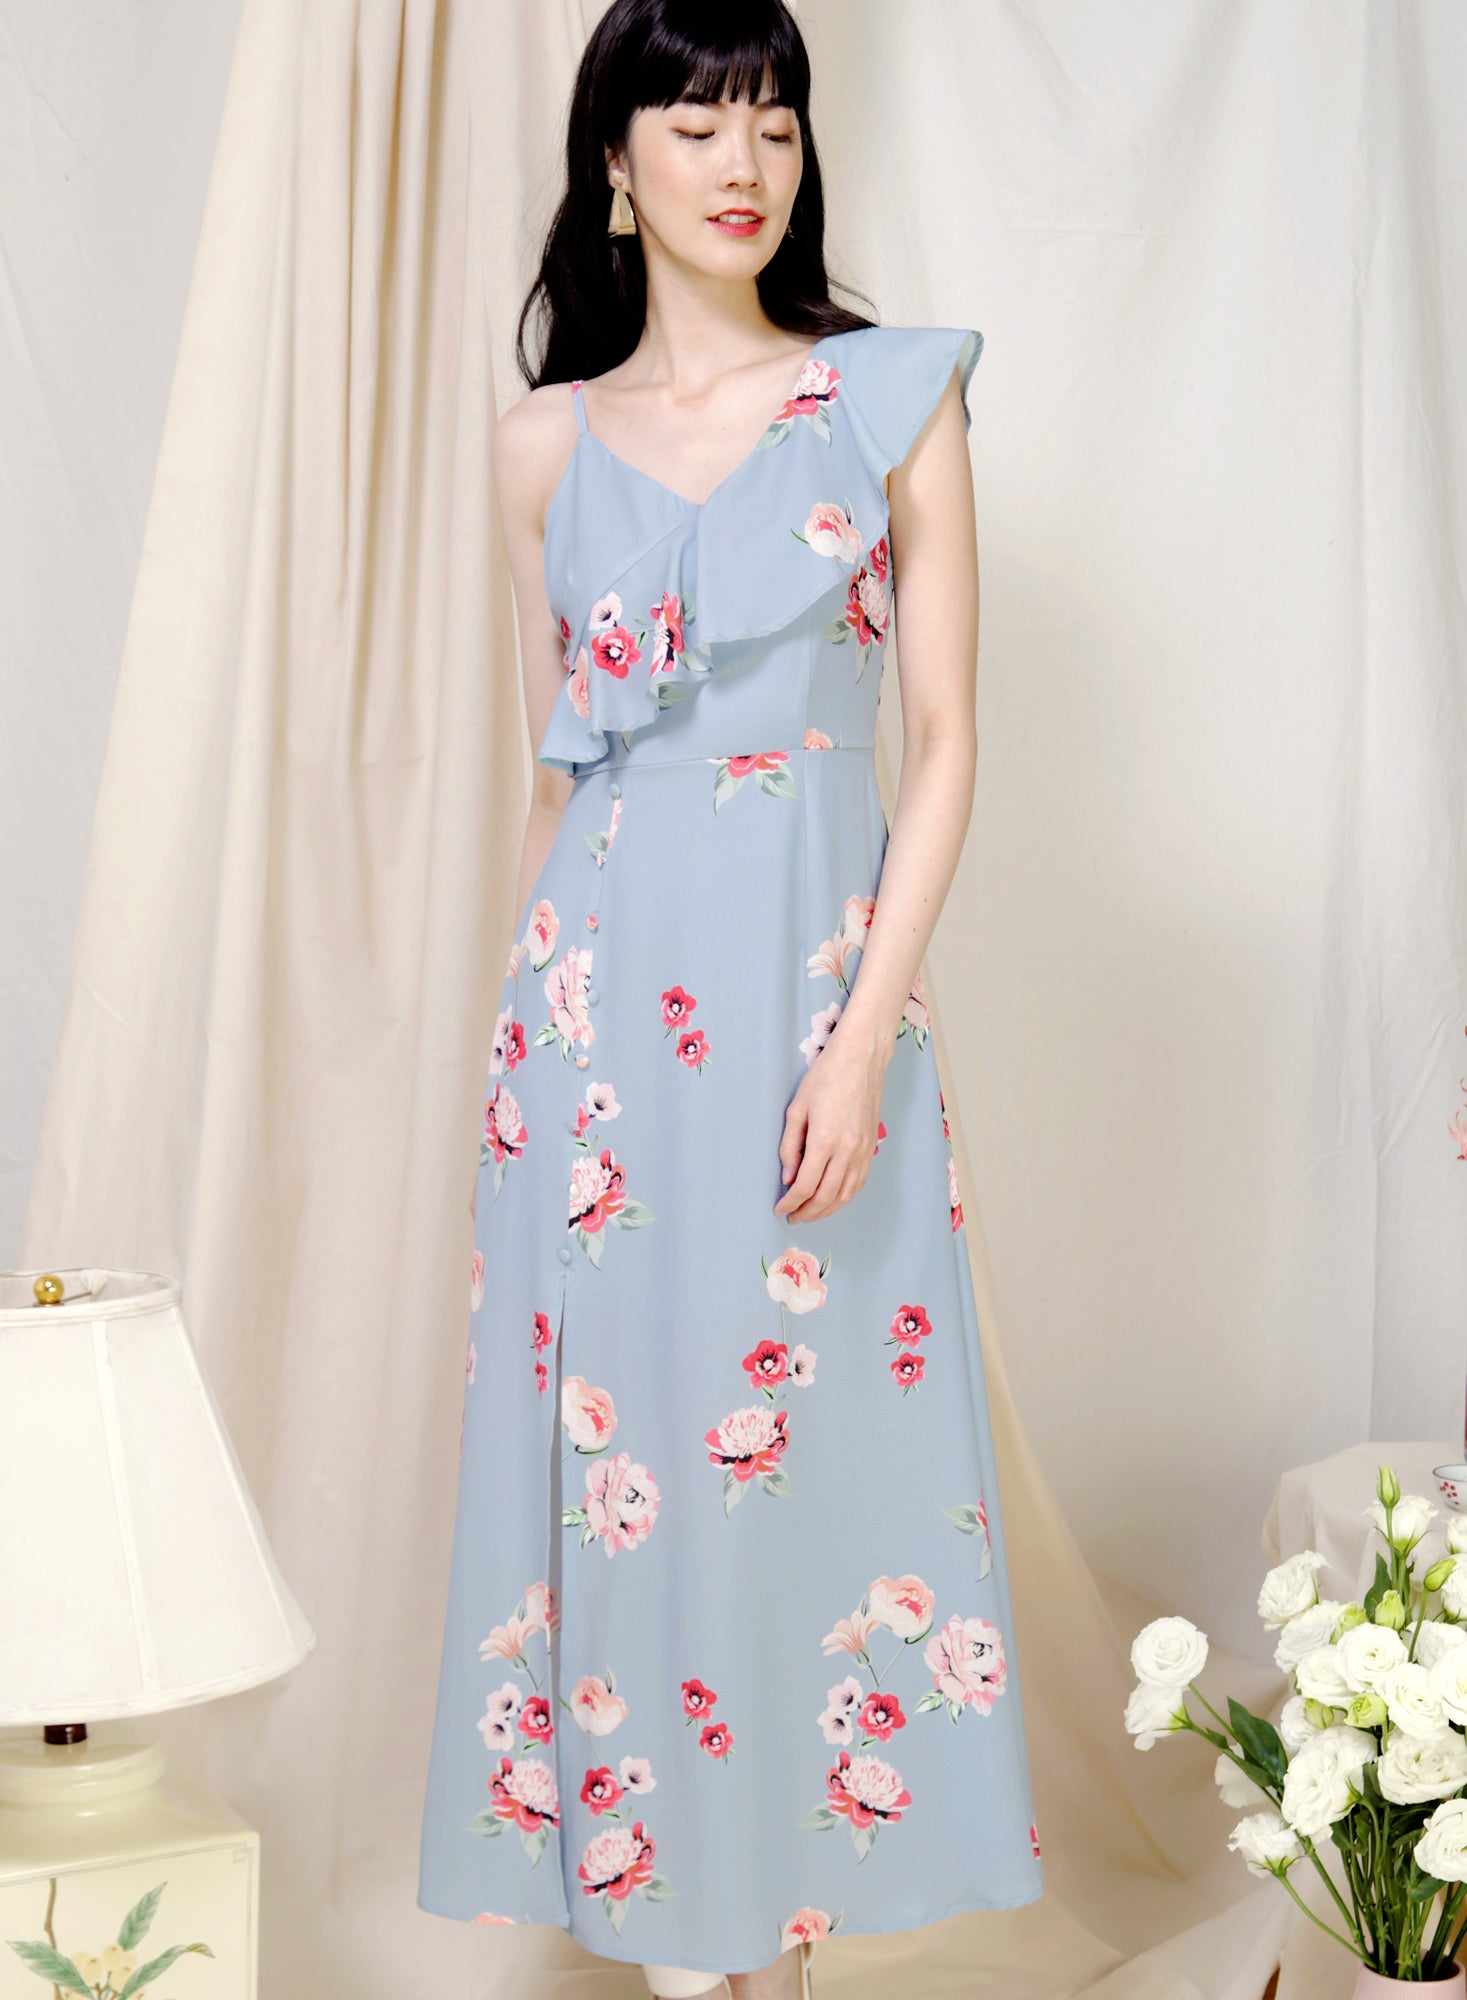 Poetry Asymmetric Ruffle Floral Dress (Dusk Blue) at $ 45.00 only sold at And Well Dressed Online Fashion Store Singapore